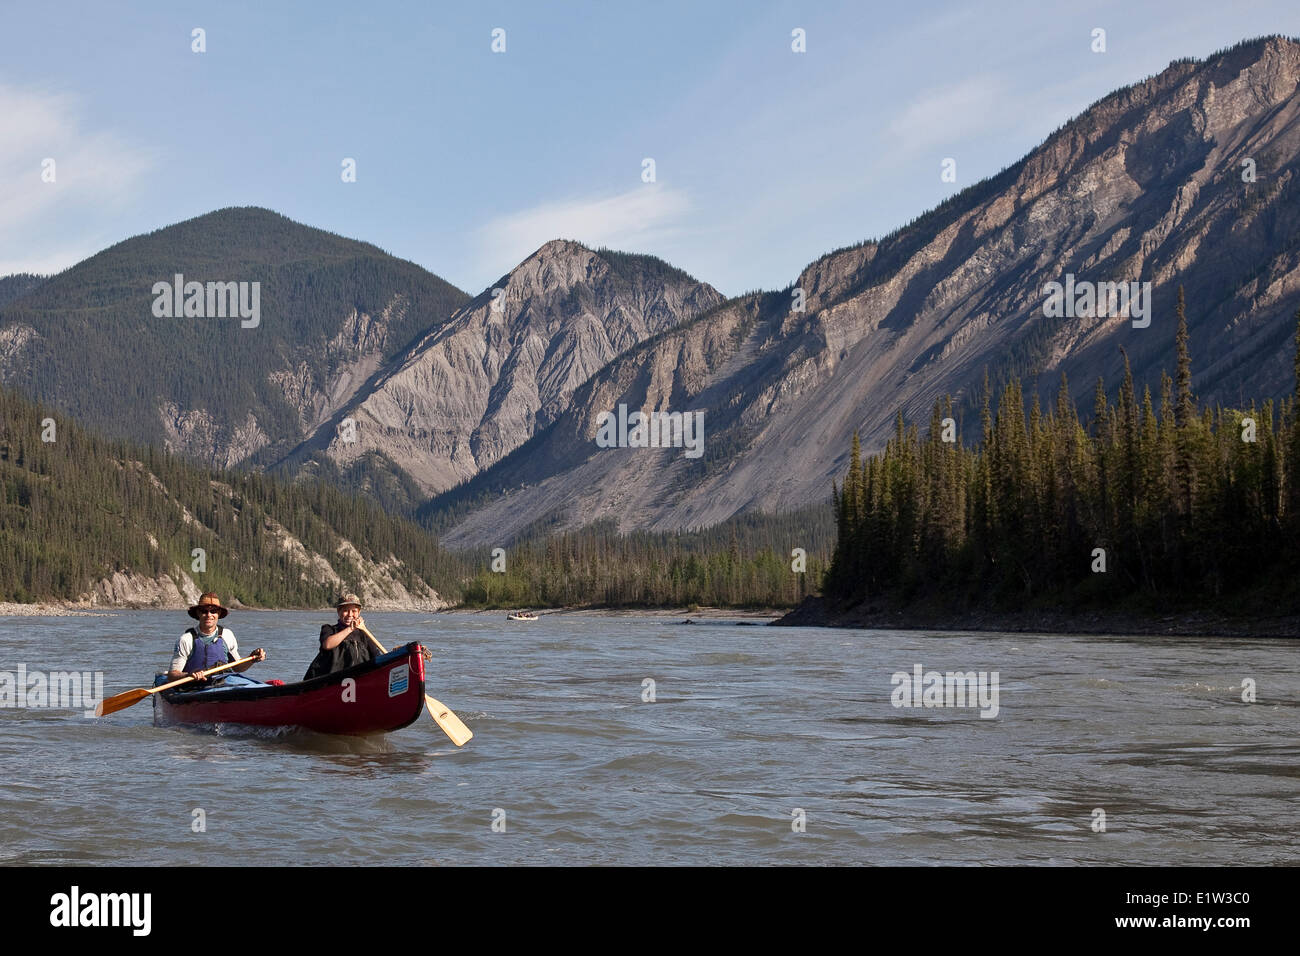 Father and daughter canoe on Nahanni River, Nahanni National Park Preserve, NWT, Canada. - Stock Image